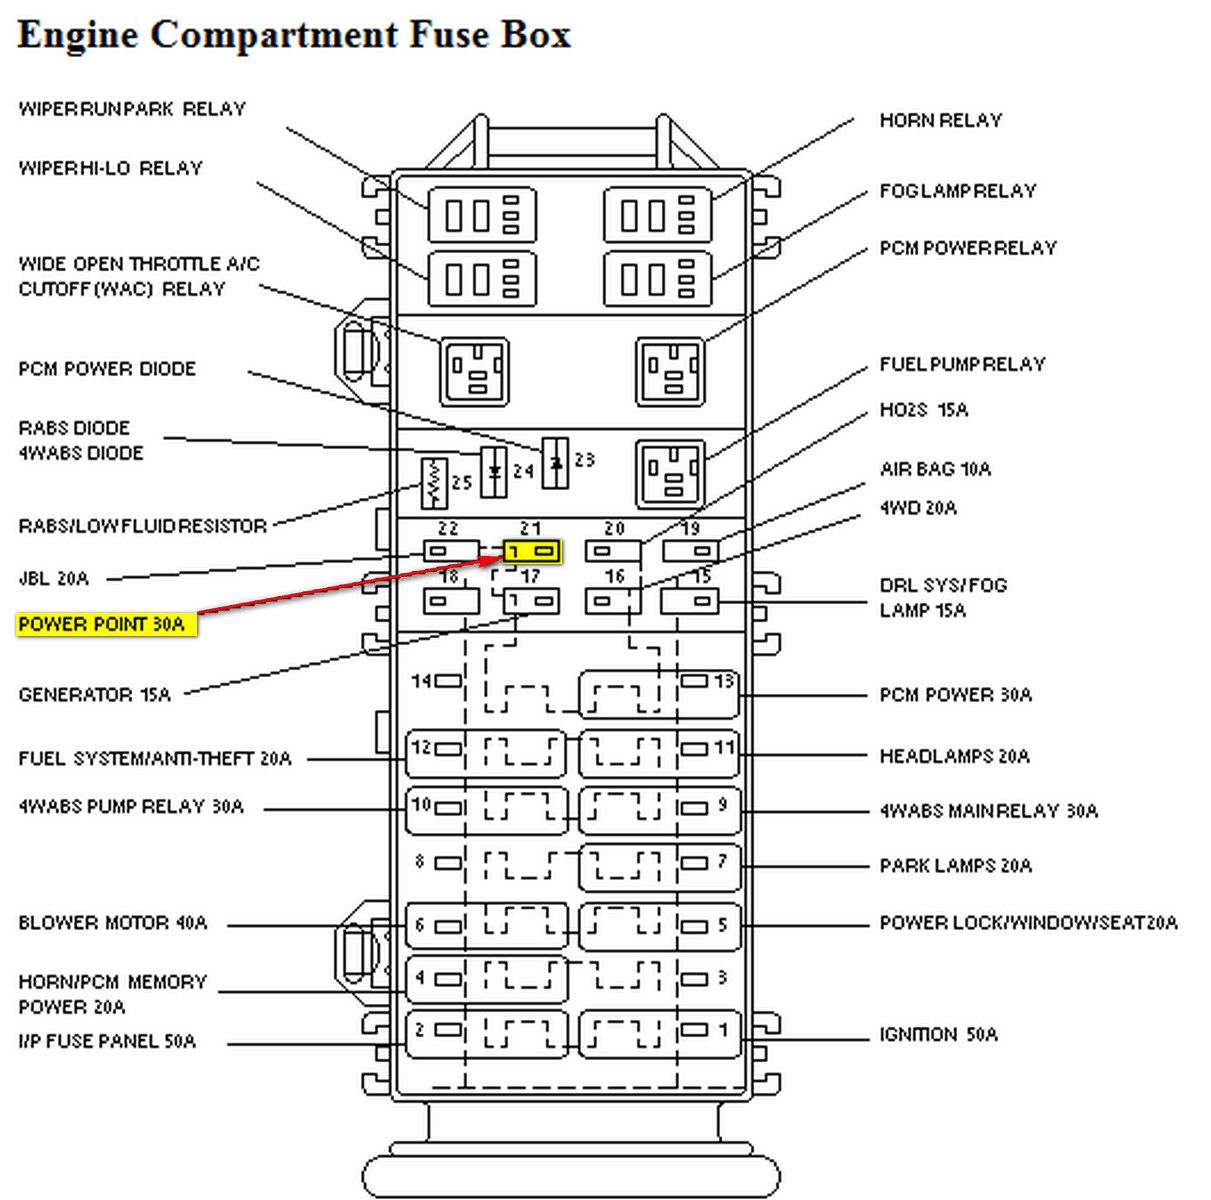 8a55967da7ae1bd251b795845886bd24 2002 ford ranger fuse diagram 1997 ford ranger fuse box diagram 2003 ford ranger fuse box diagram at edmiracle.co